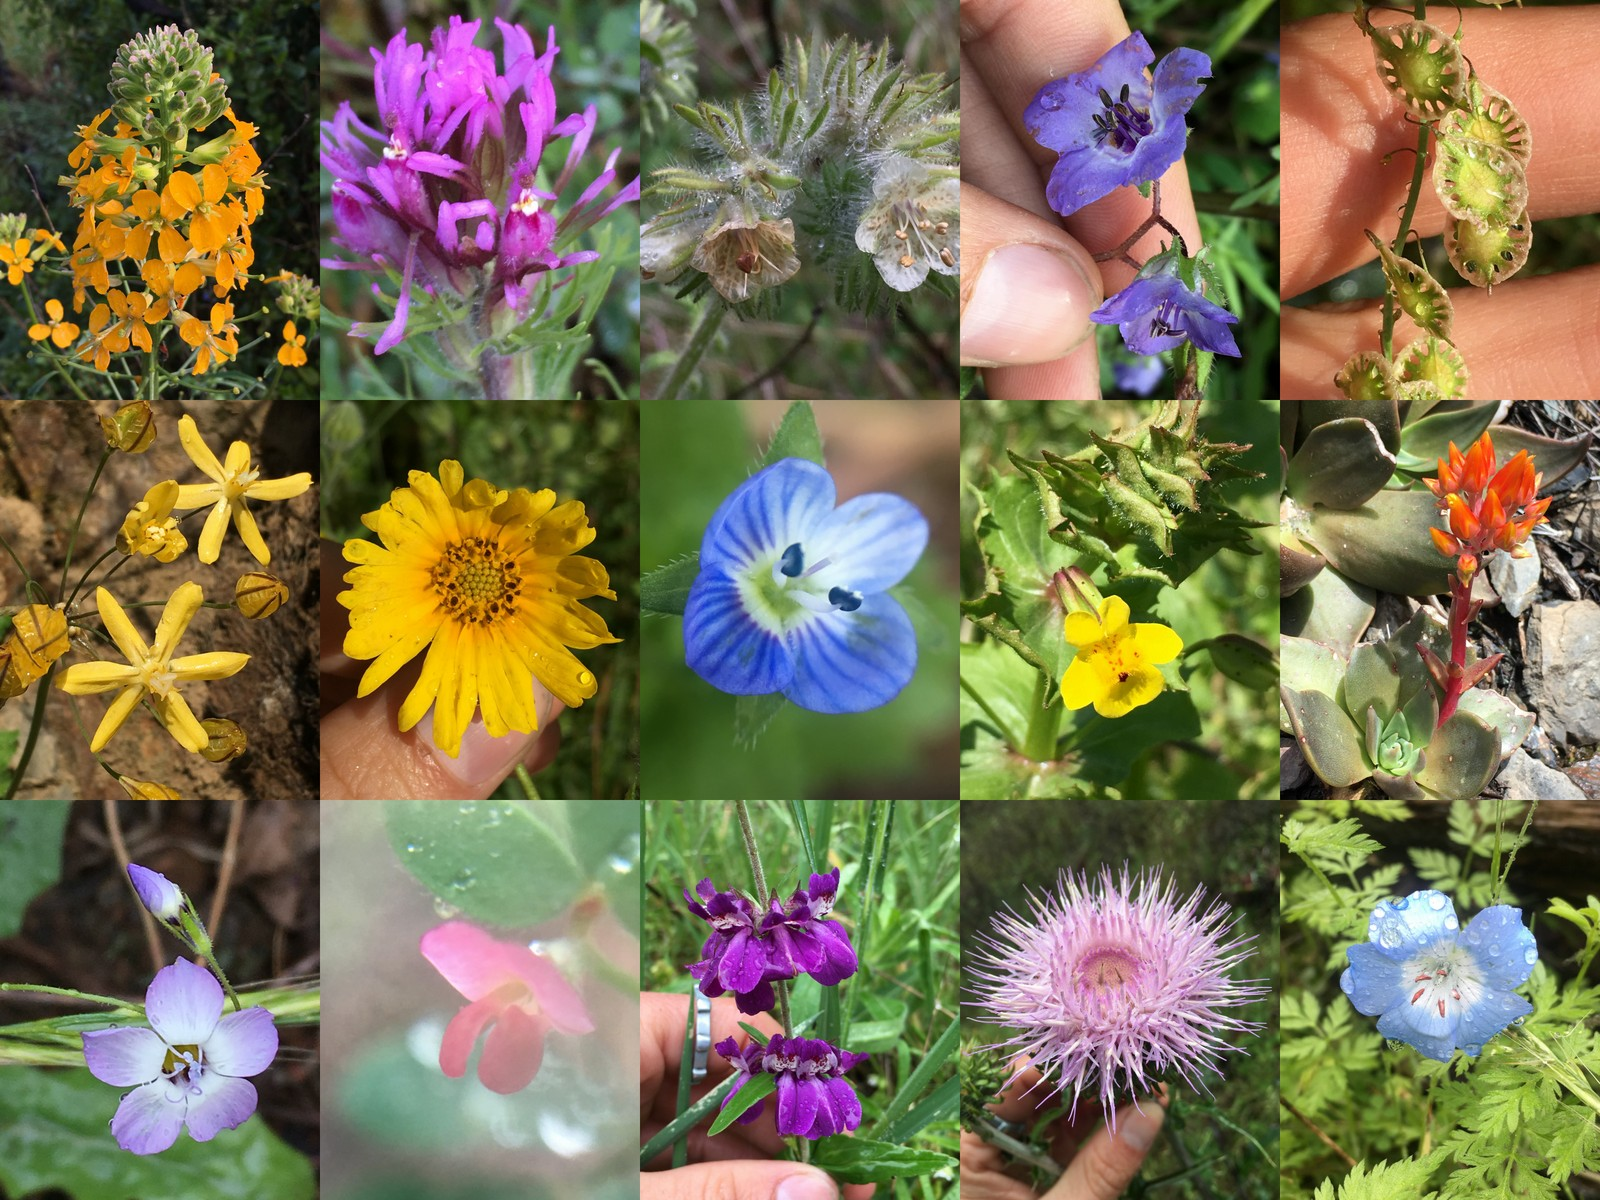 A few of the flowers